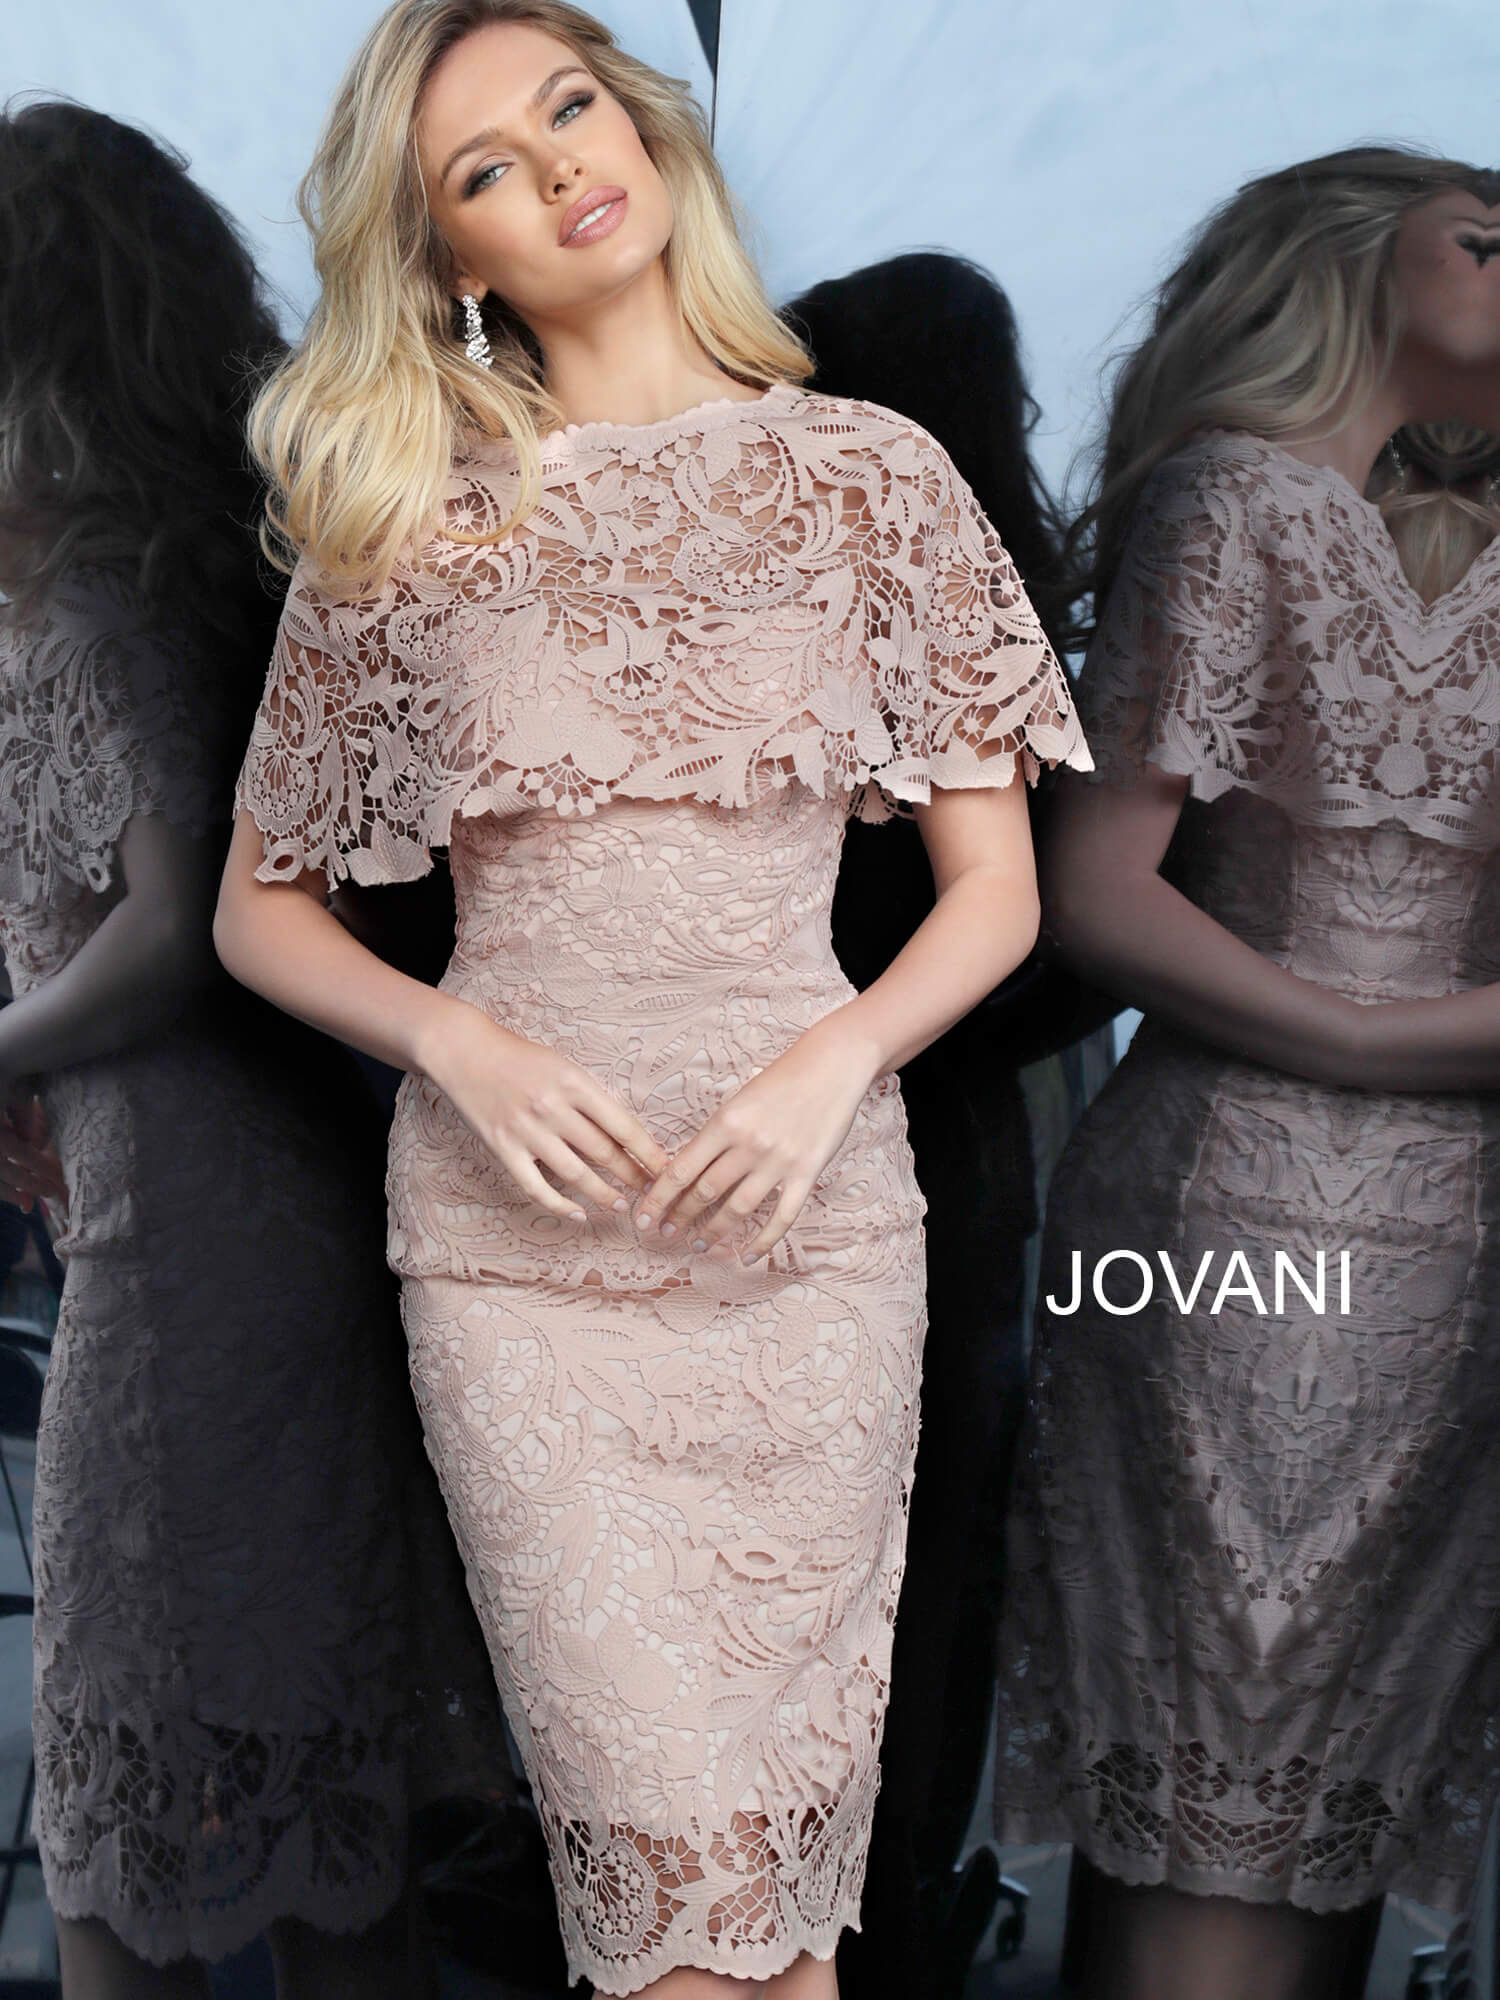 Jovani 1401 | Light Pink Lace Knee-Length Cocktail Dress